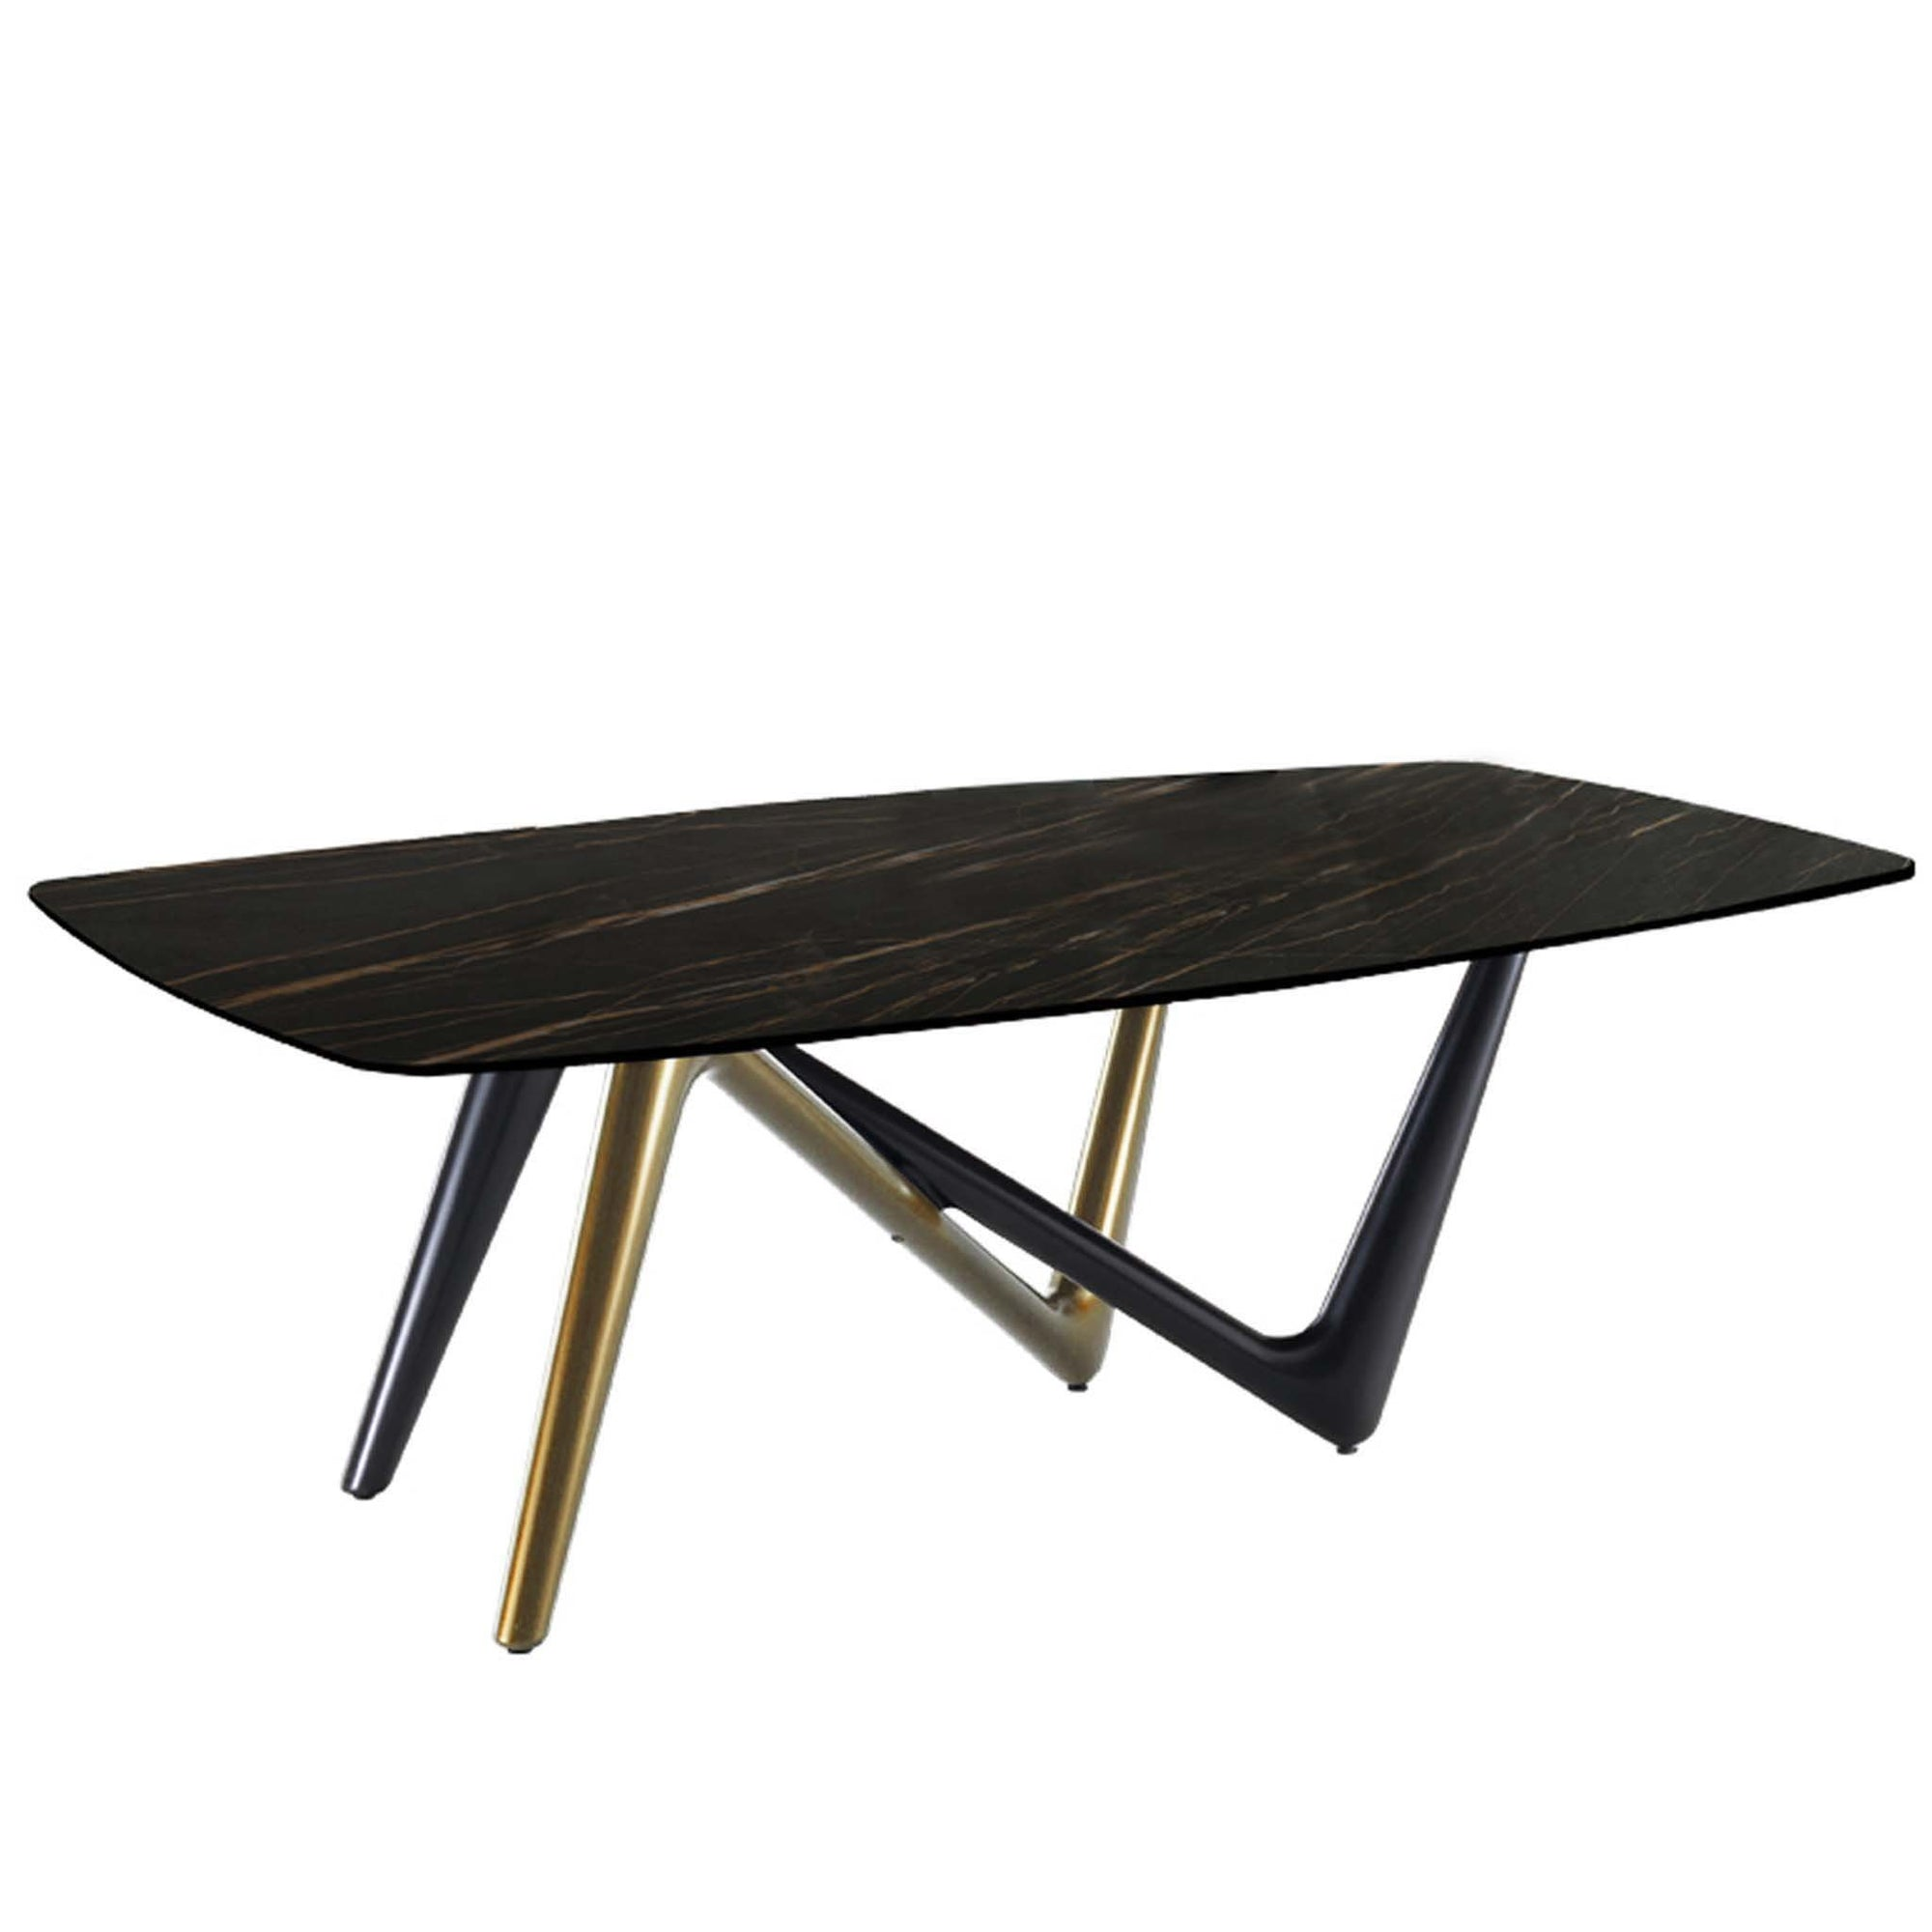 Bellini-Esse Dining Table, Base with Noir Desir Ceramic Top-Dining Tables-MODTEMPO